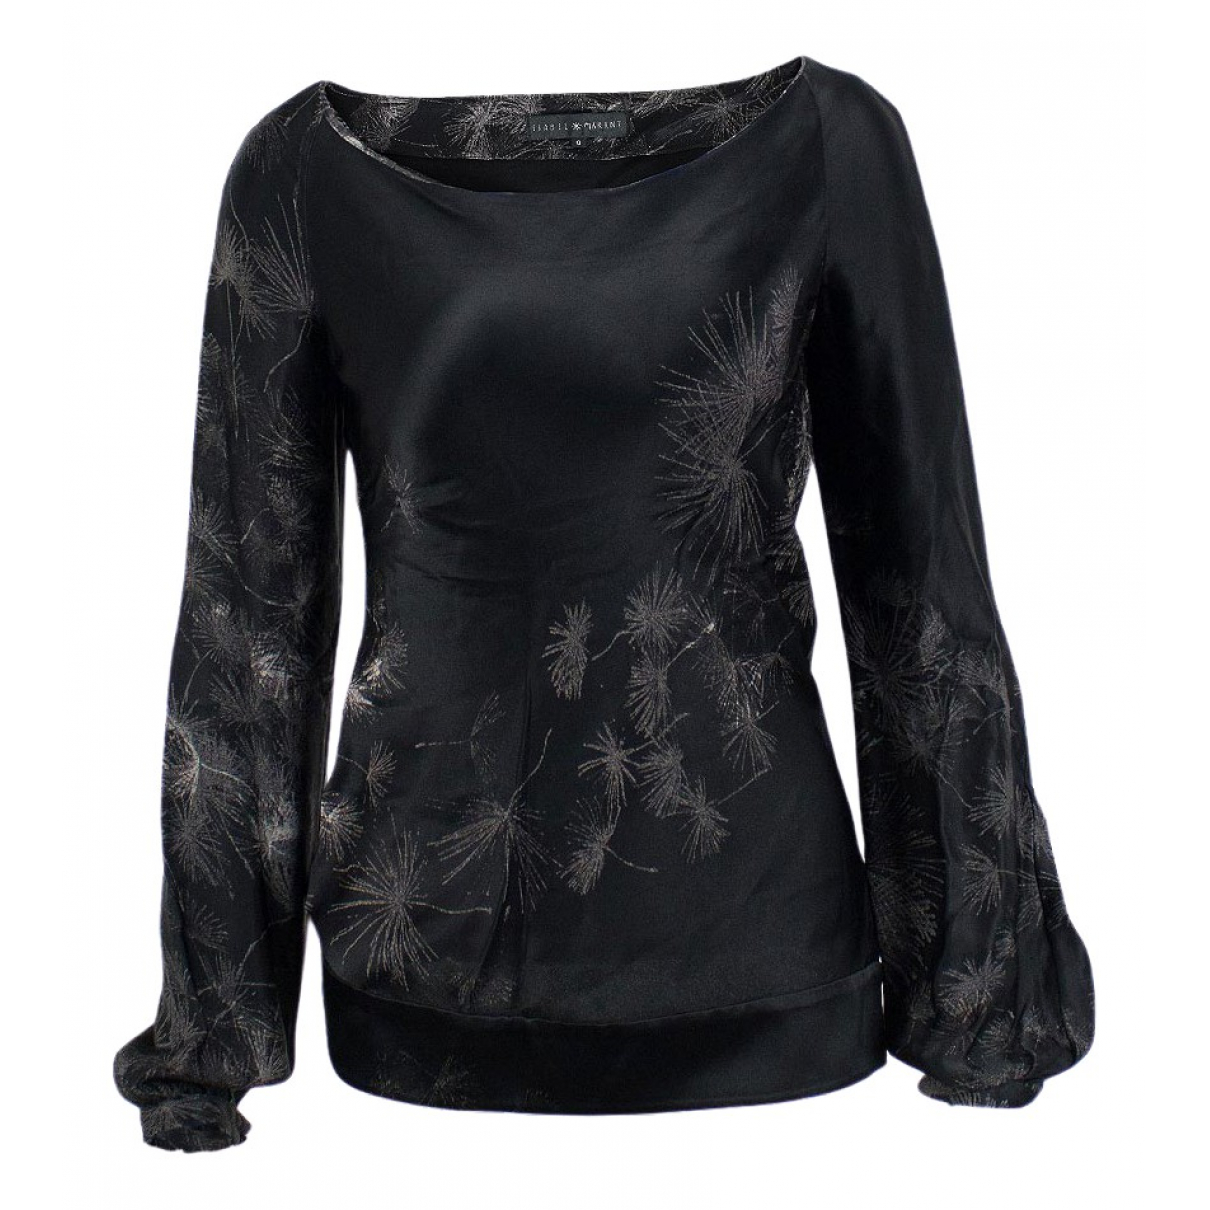 Isabel Marant Etoile \N Black Silk  top for Women M International